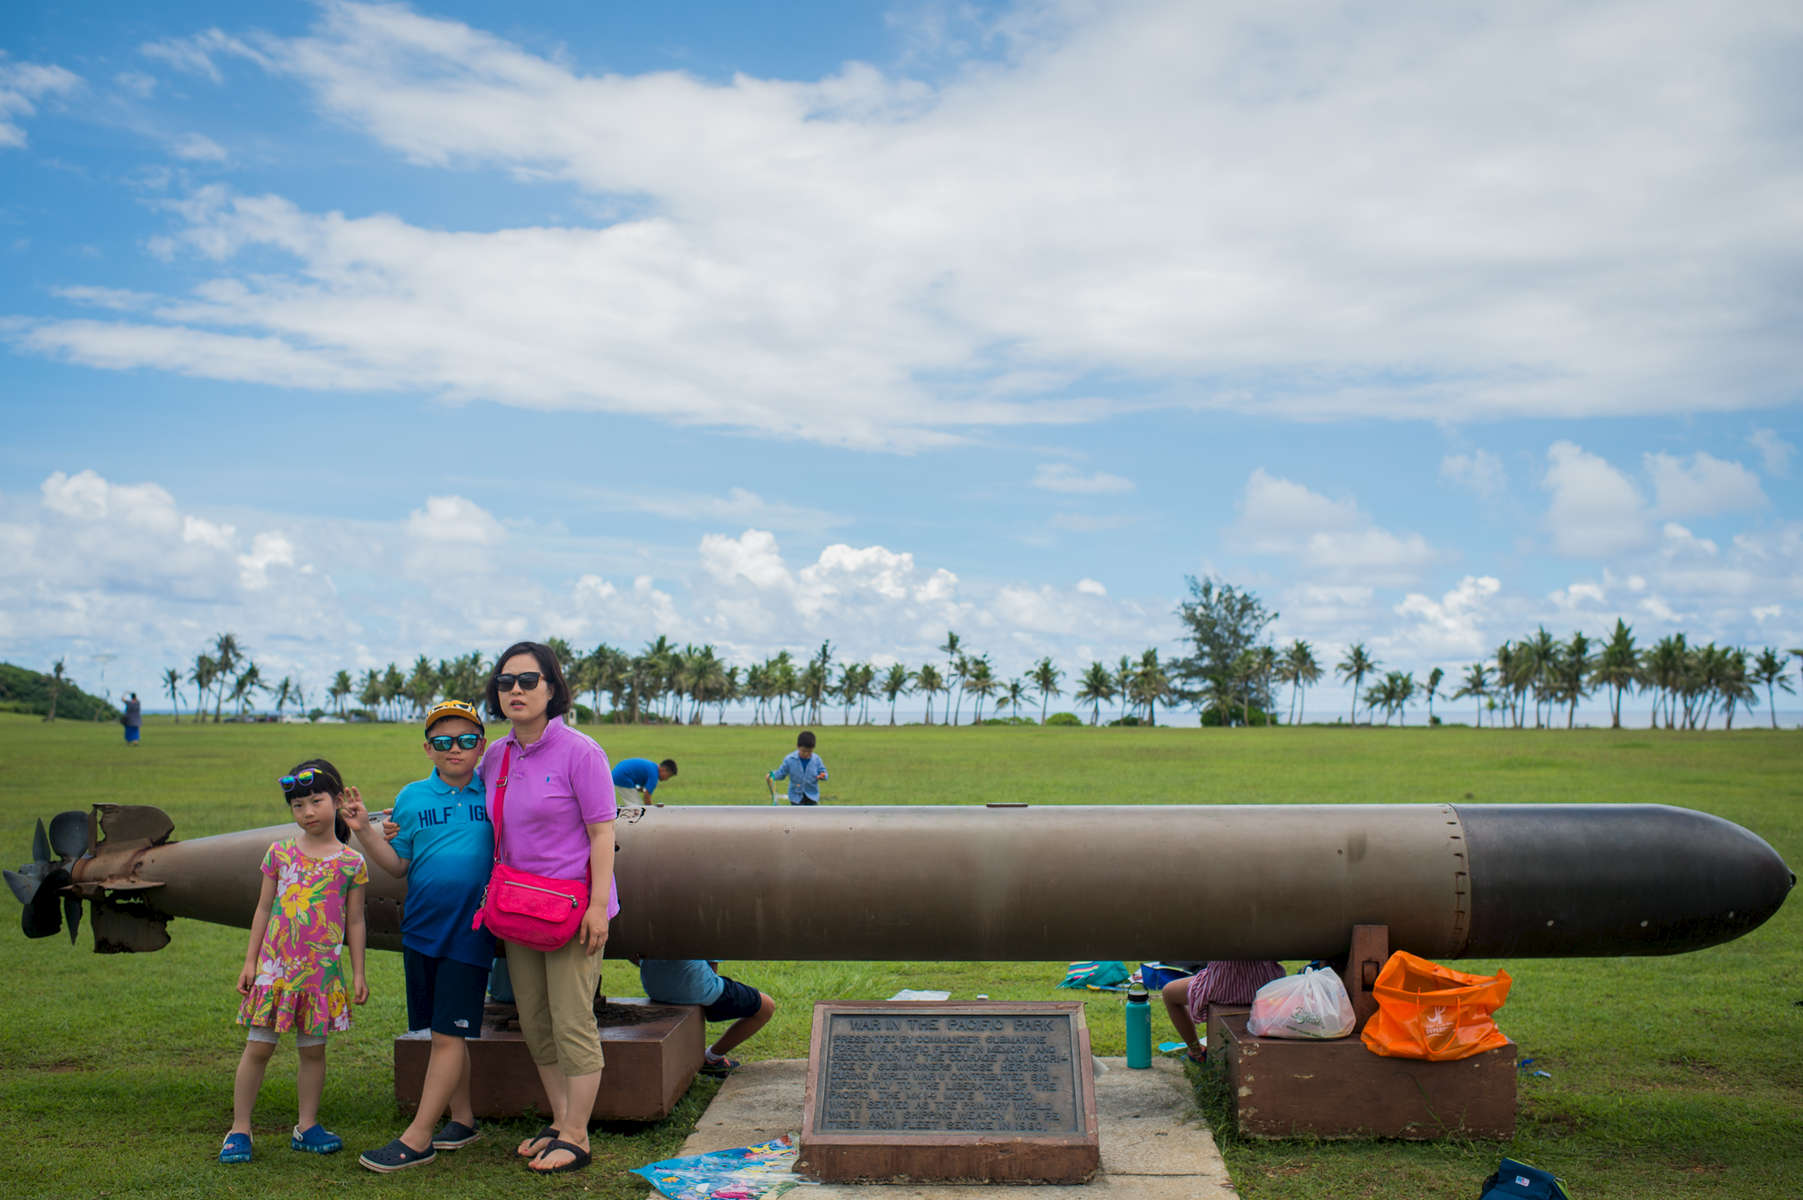 Korean tourists stop by the Asan Beach National Park to snap photos in front of the MK MOD5 Torpedo. This beach was one of the main beaches where U.S. soldiers stormed onto the island during WWII to recapture the land from the Japanese occupation. (Aug 11, 2017)Photo by Nancy Borowick